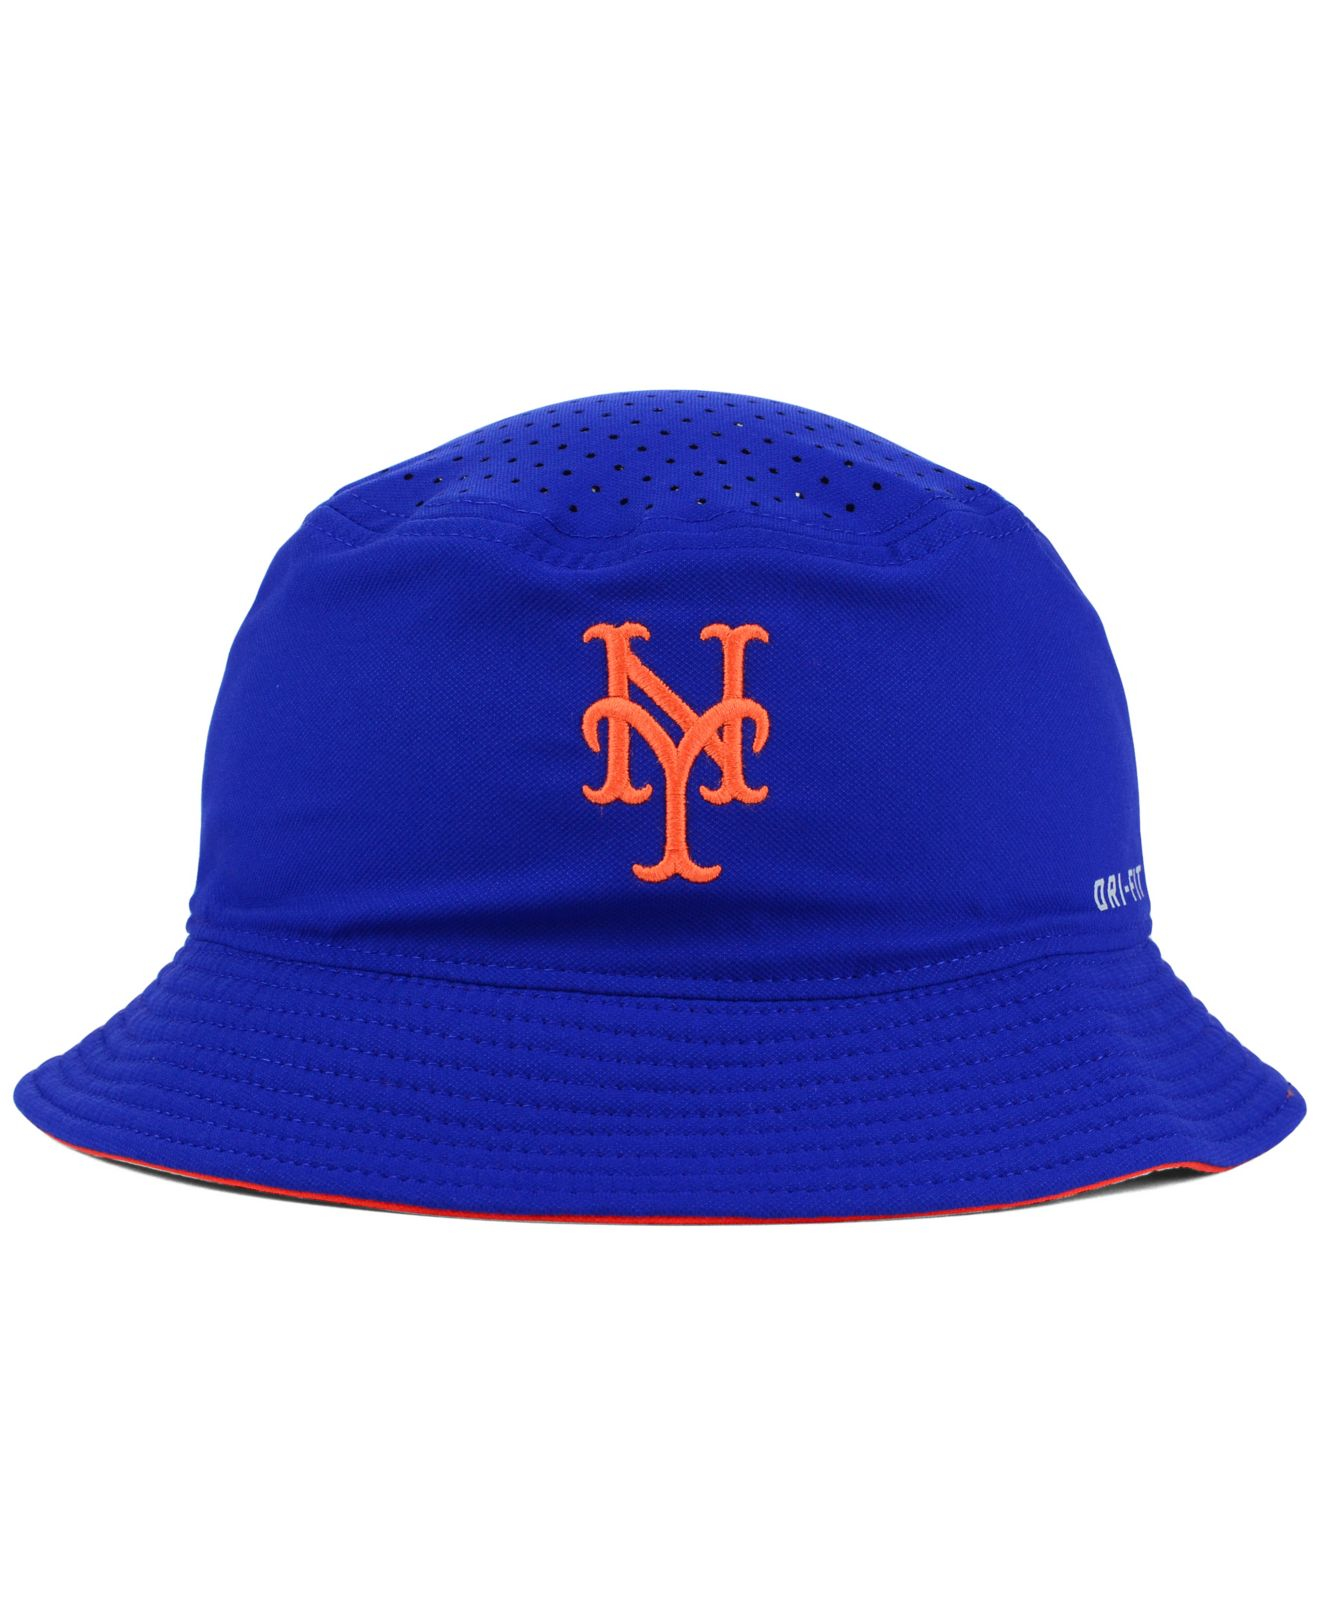 1cc62c18a03c3 ... get lyst nike new york mets vapor dri fit bucket hat in blue for men  68318